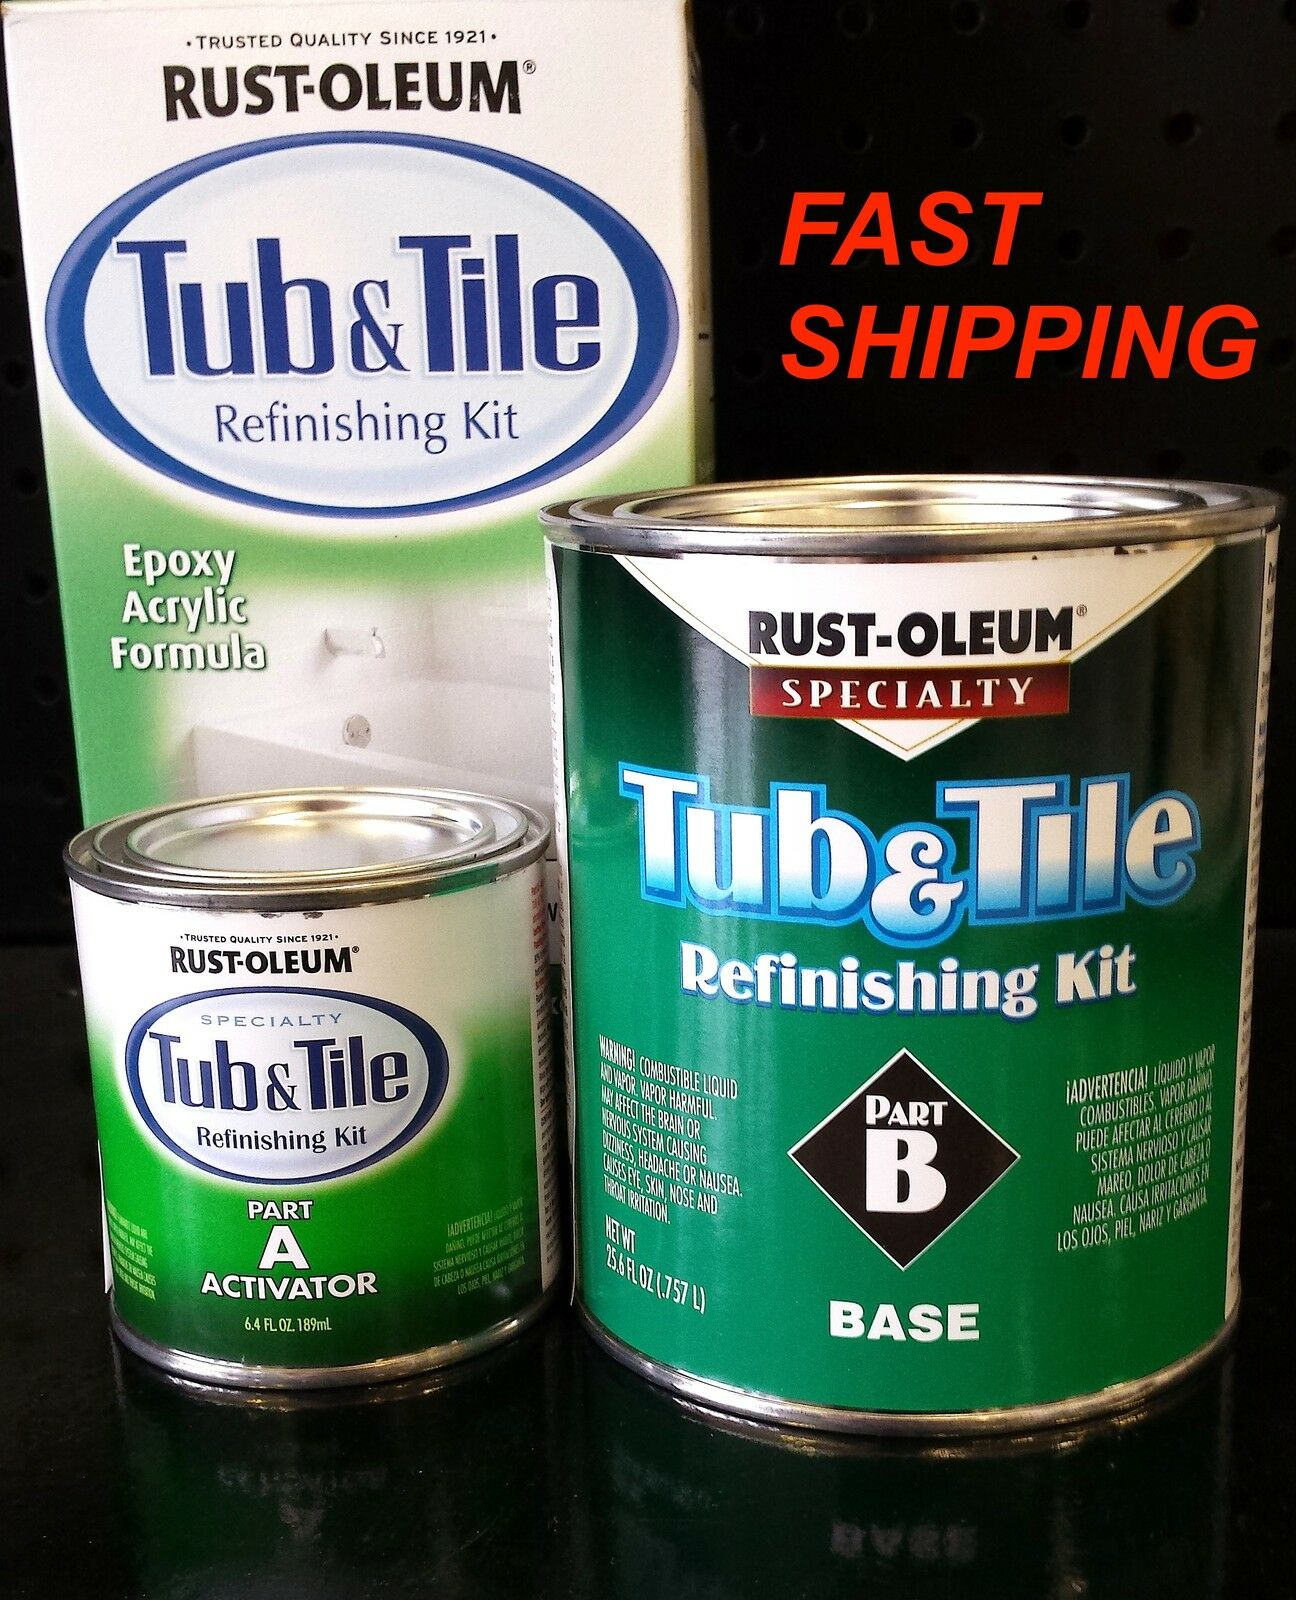 Rust-Oleum Tub & Tile Refinishing Kit - 946ml, White | eBay